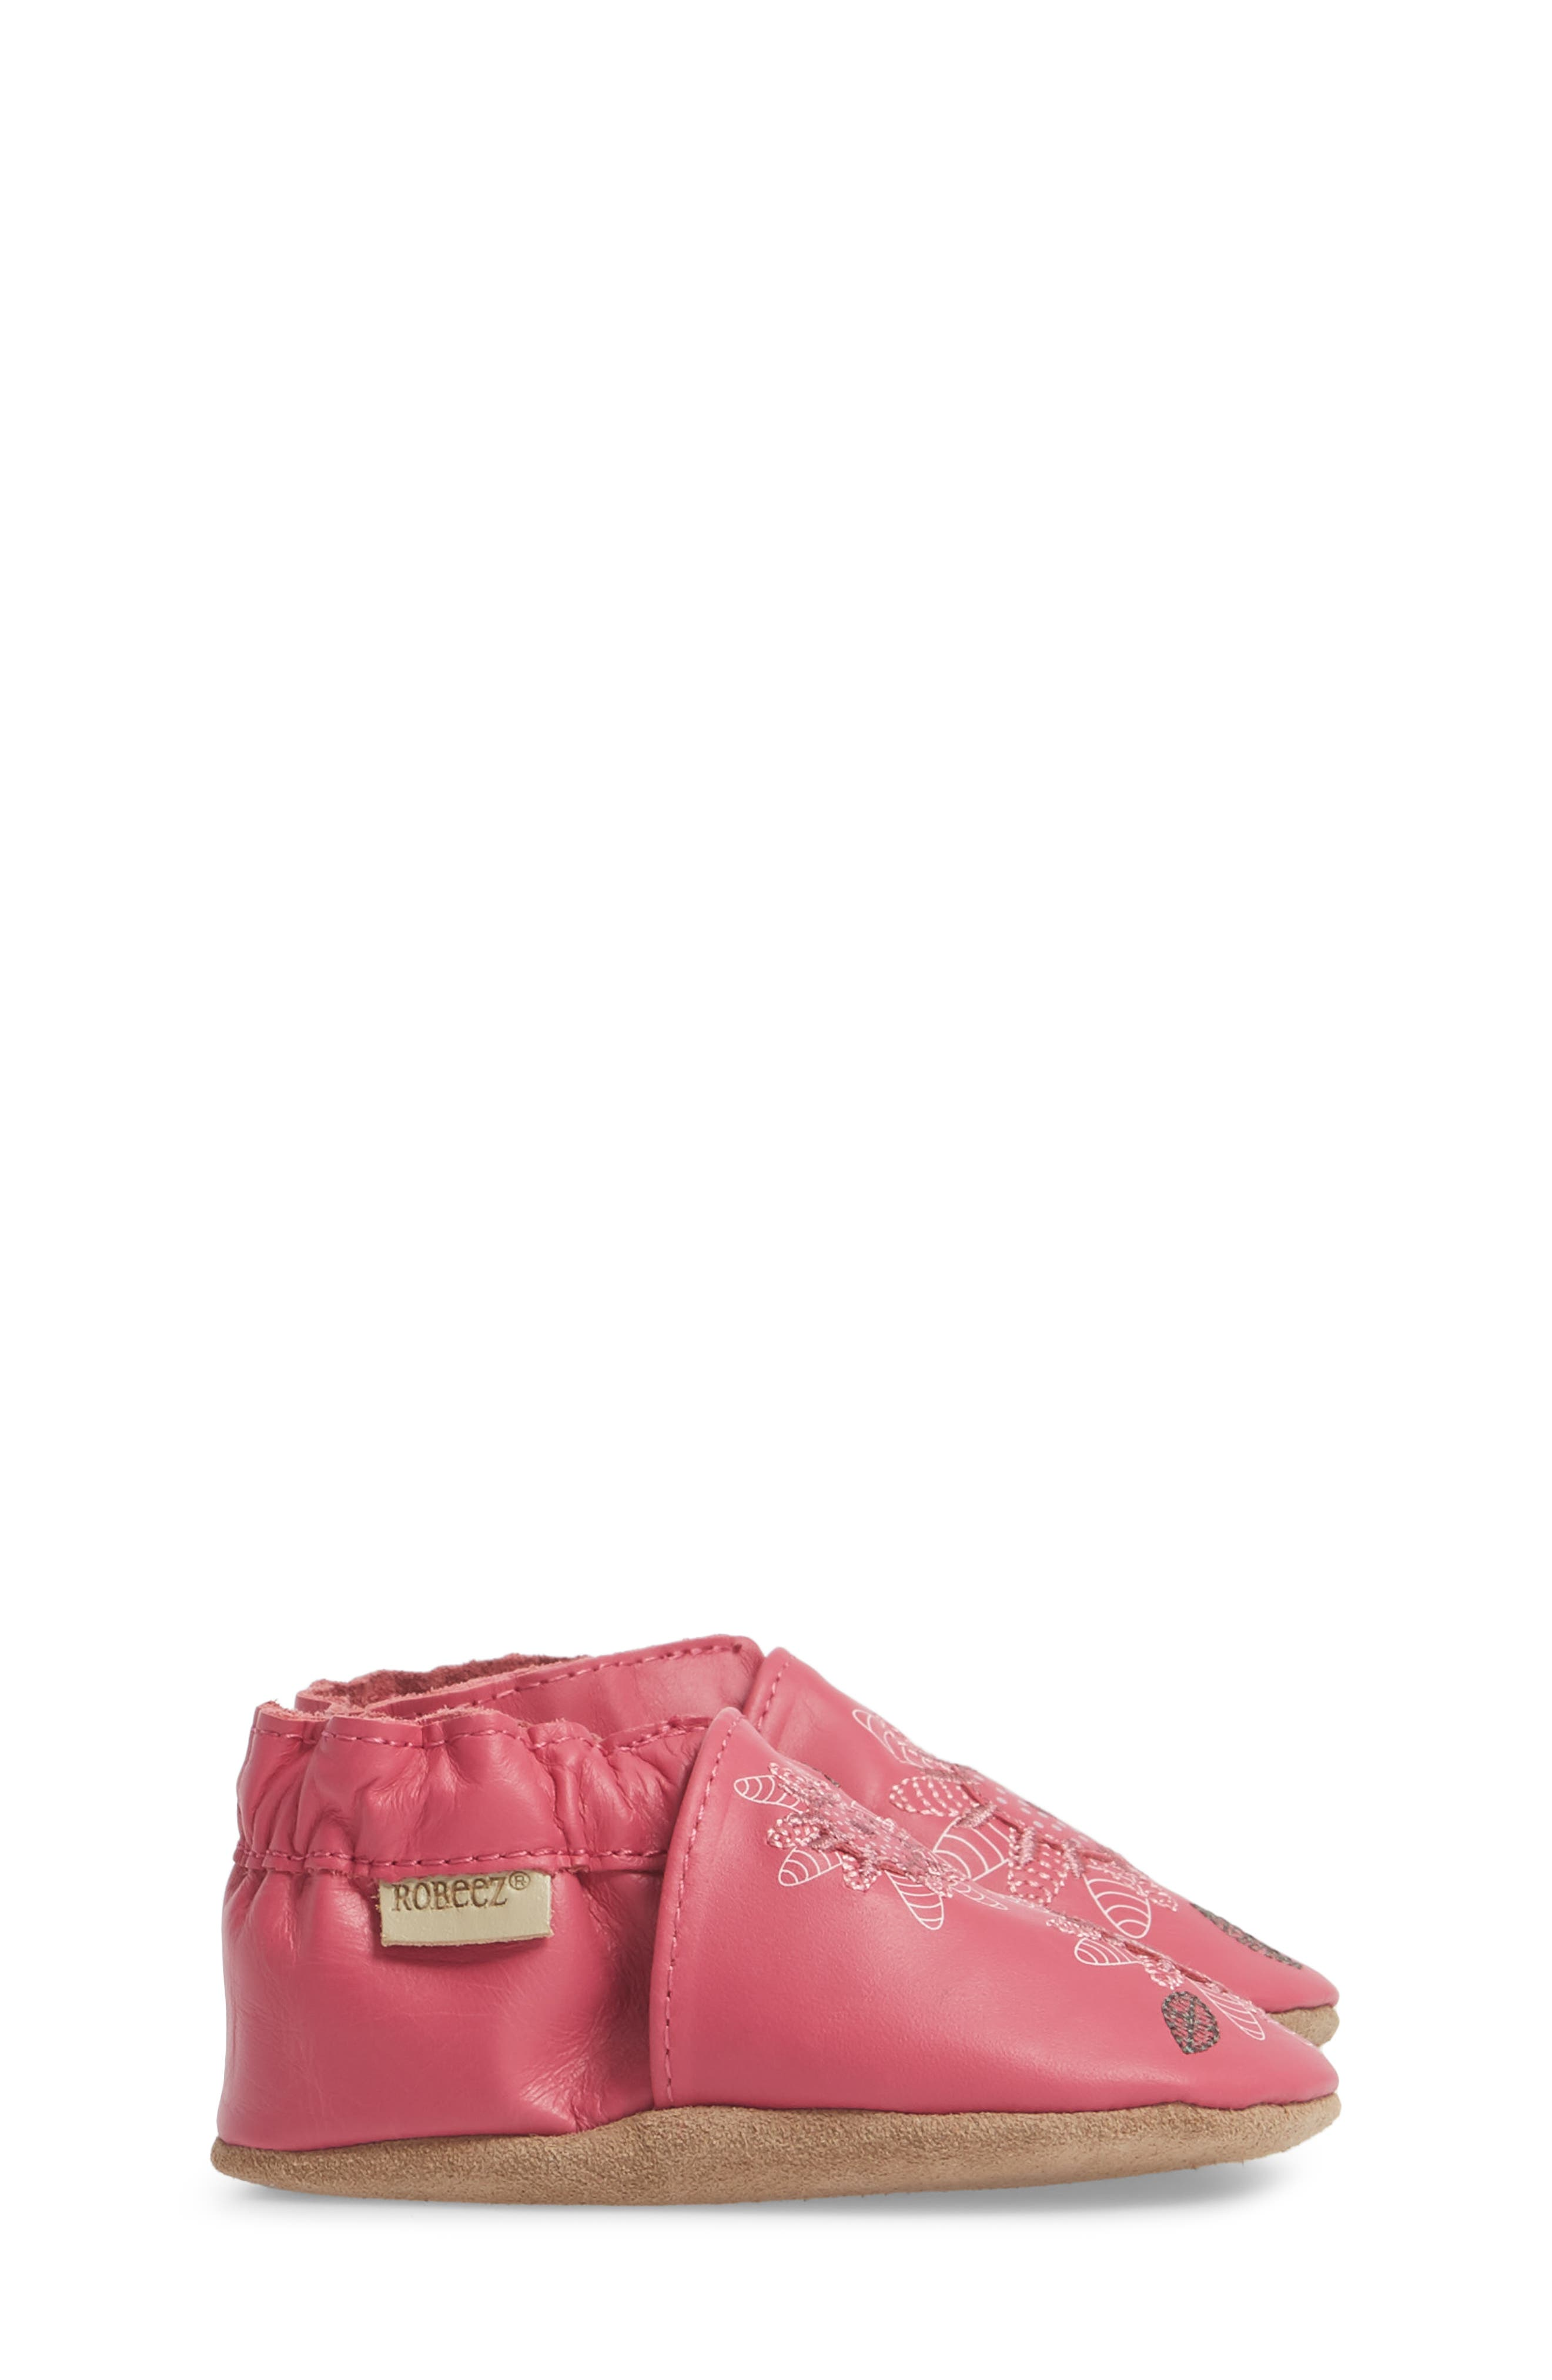 Fiona Flower Moccasin Crib Shoe,                             Alternate thumbnail 4, color,                             Hot Pink